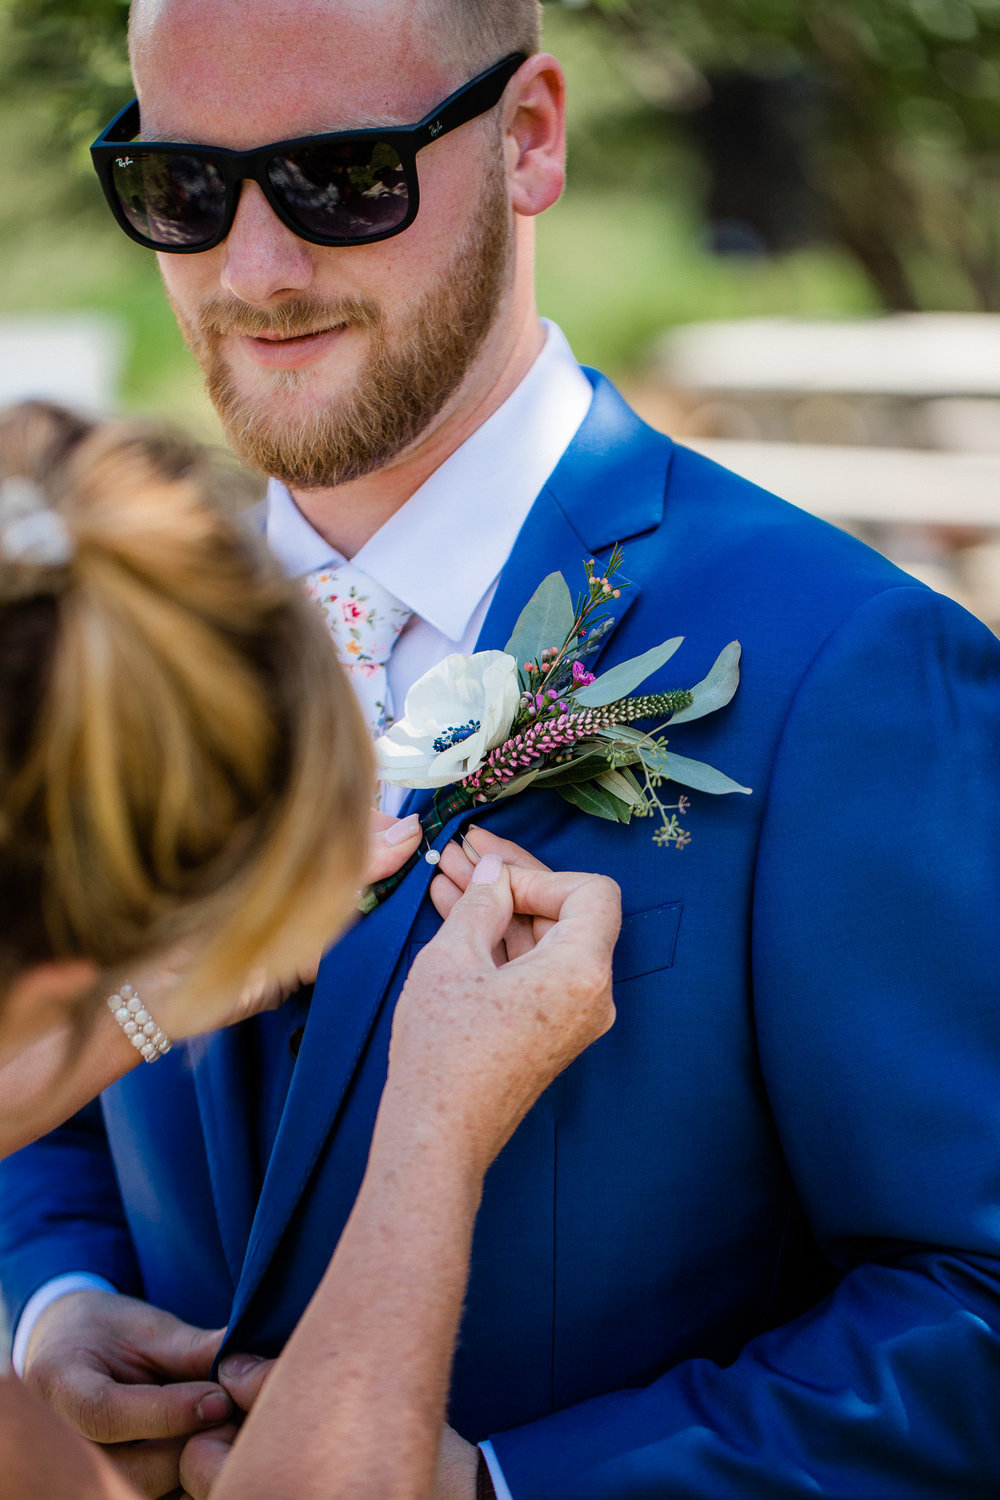 Groom putting on boutonniere on wedding day